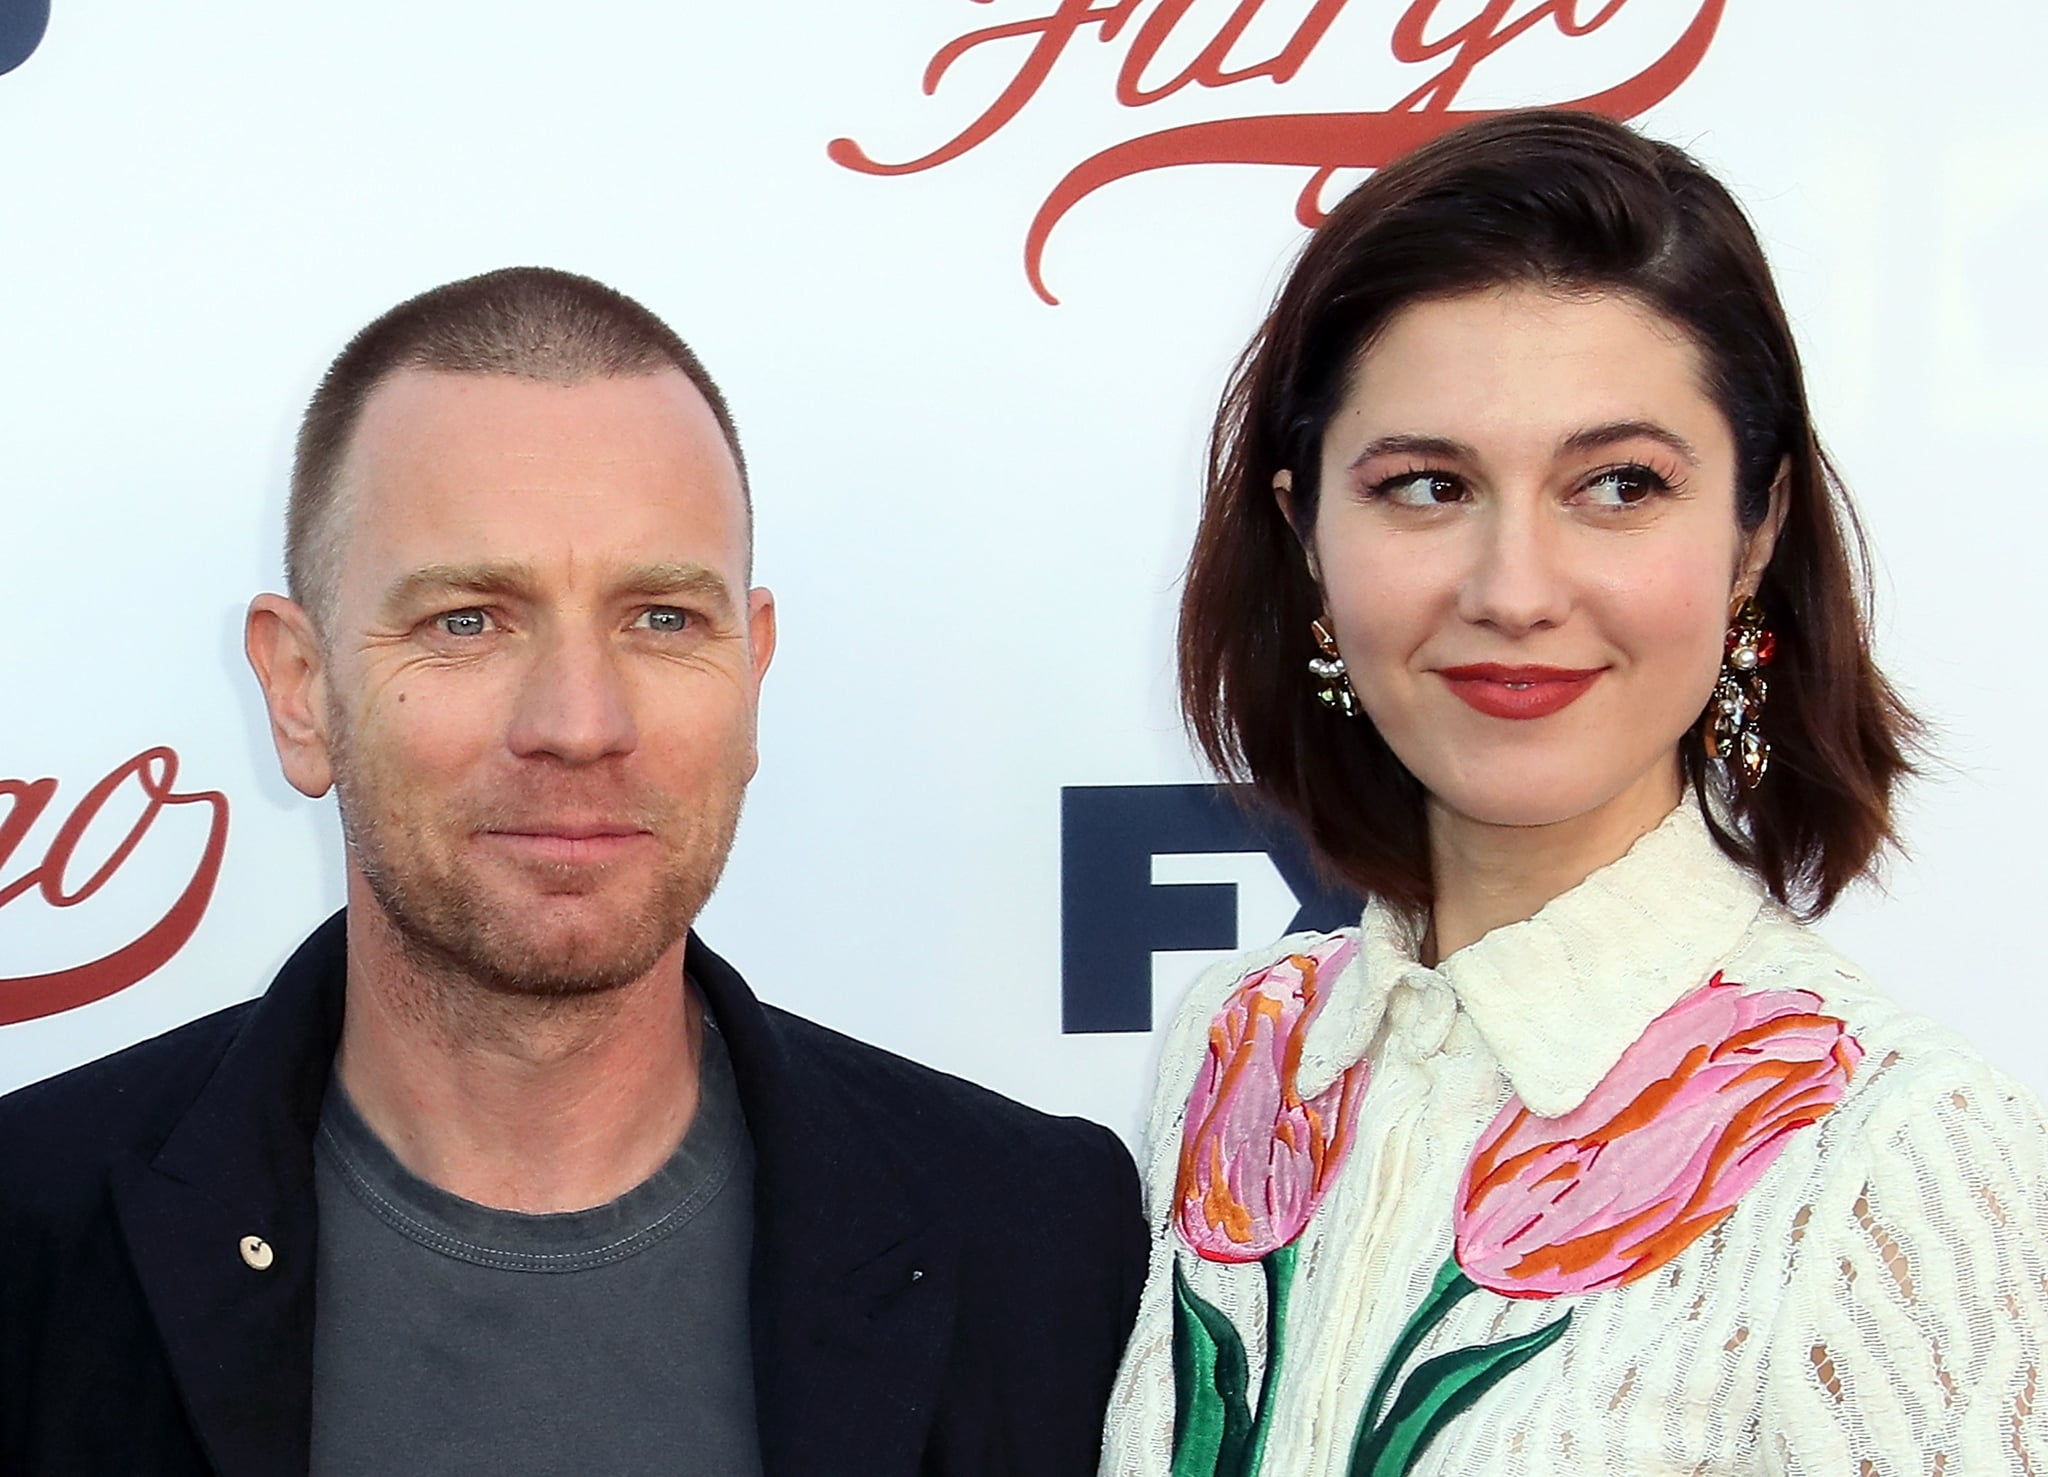 NORTH HOLLYWOOD, CA - MAY 11:  Actors Ewan McGregor (L) and Mary Elizabeth Winstead attend FX's